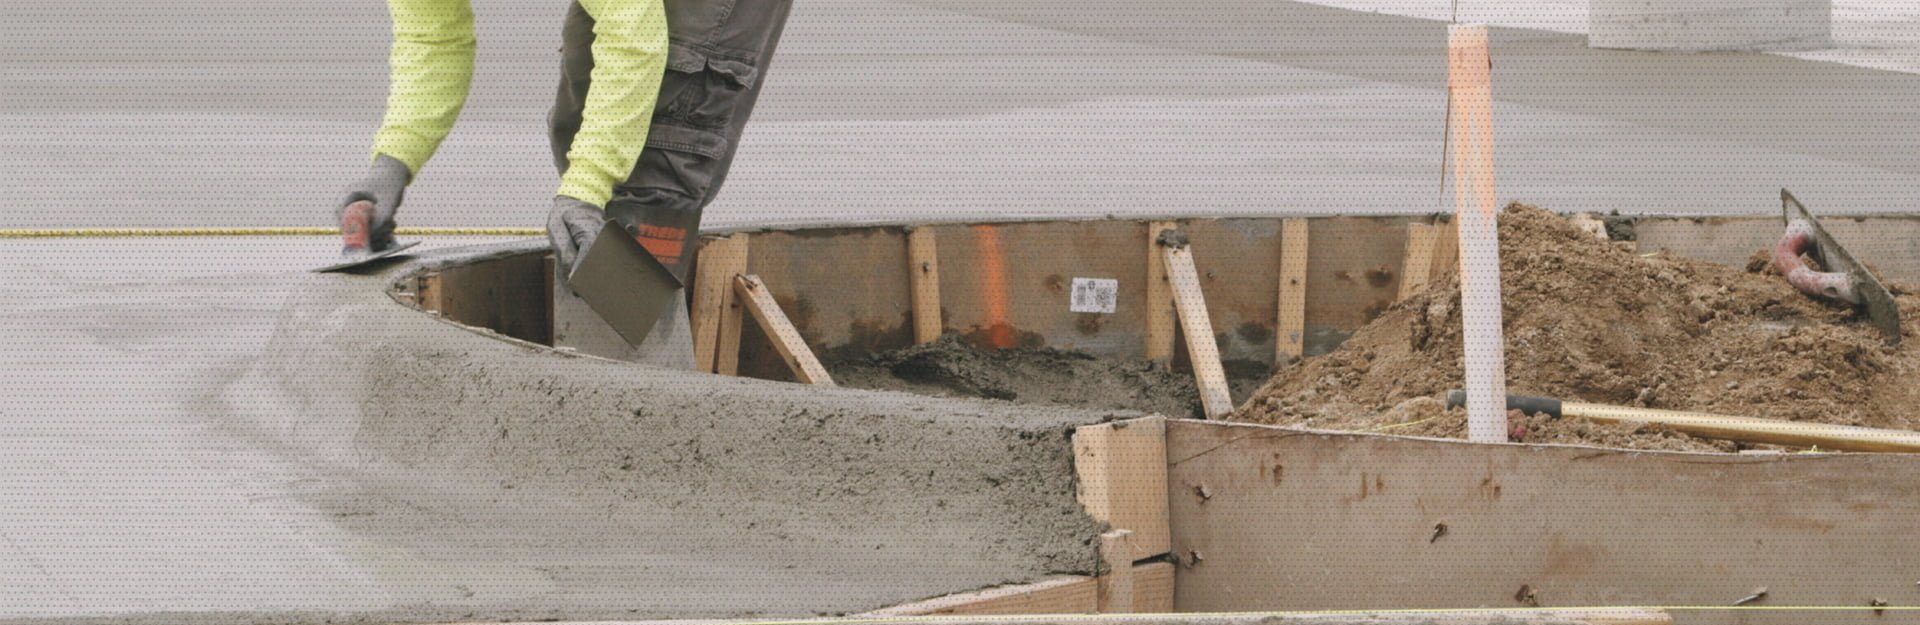 AM Contracting employees maneuvering wet cement from the surface into an upwards angle creating a sidewalk curb